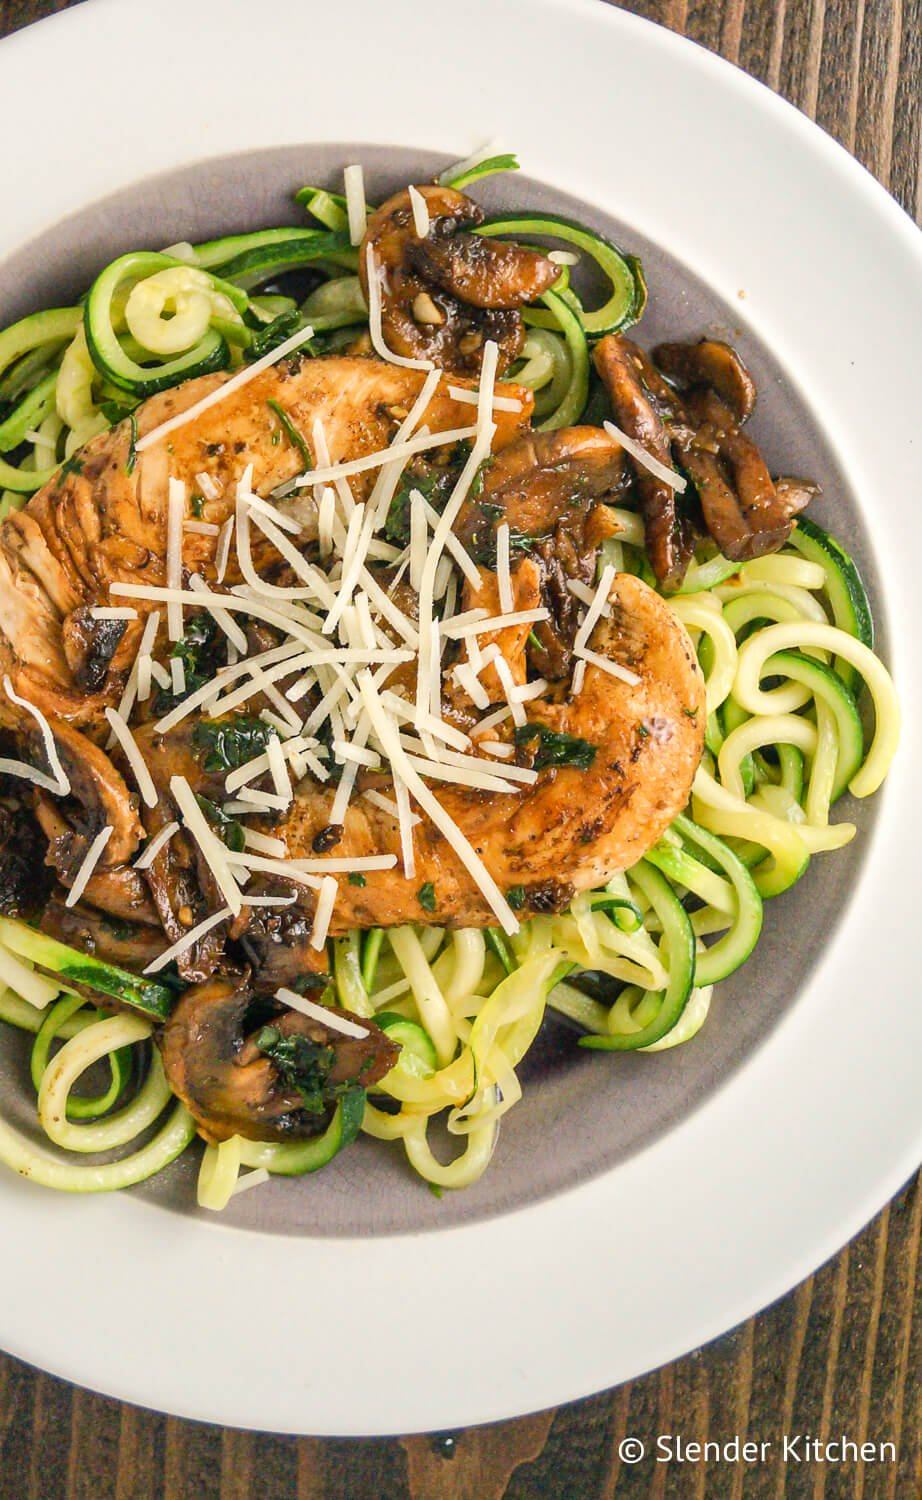 Balsamic chicken with zucchini noodles on a white plate and wood background.